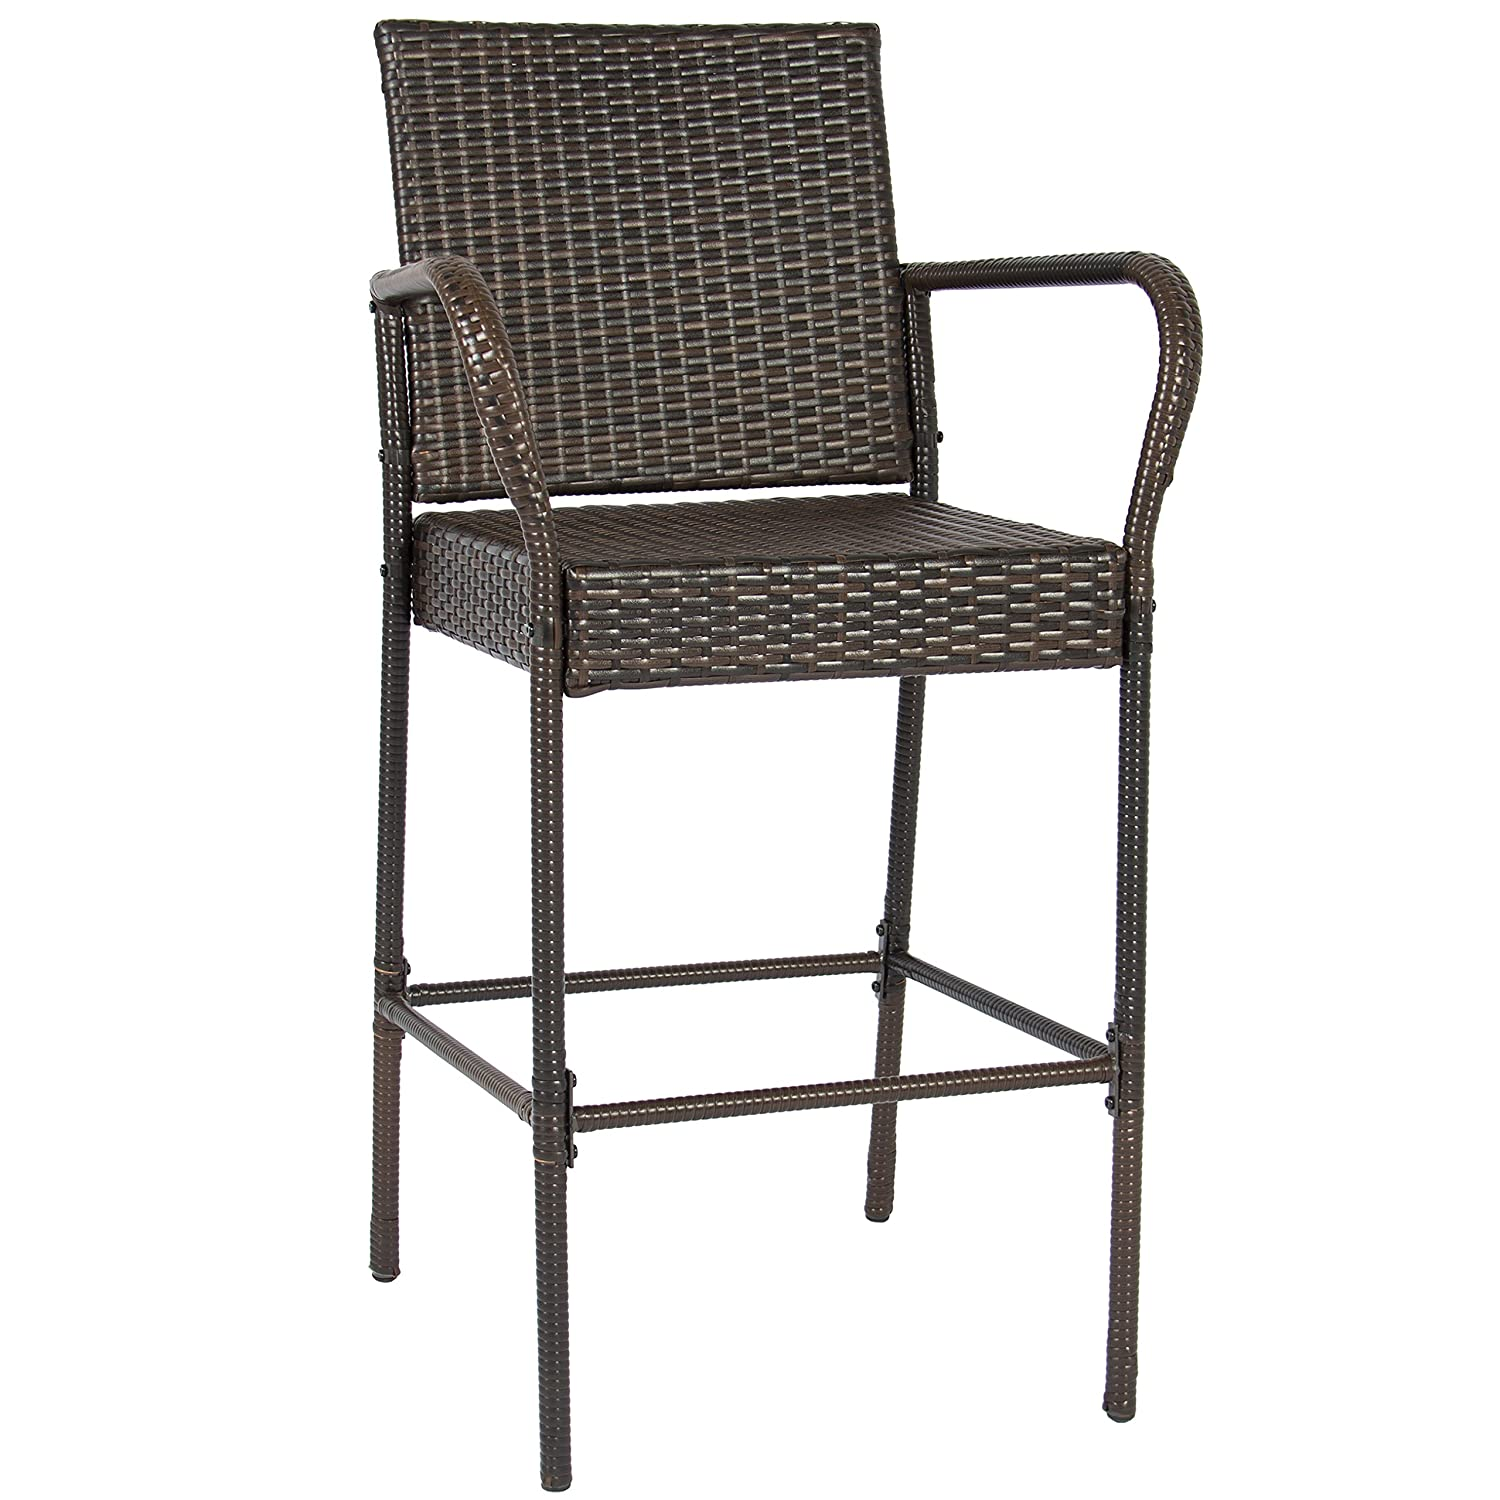 inch white using arm stools outdoor backs ba swivel back well black with articles plus seat stool wicker antique tag bar armrests upholstered and as height counter rattan